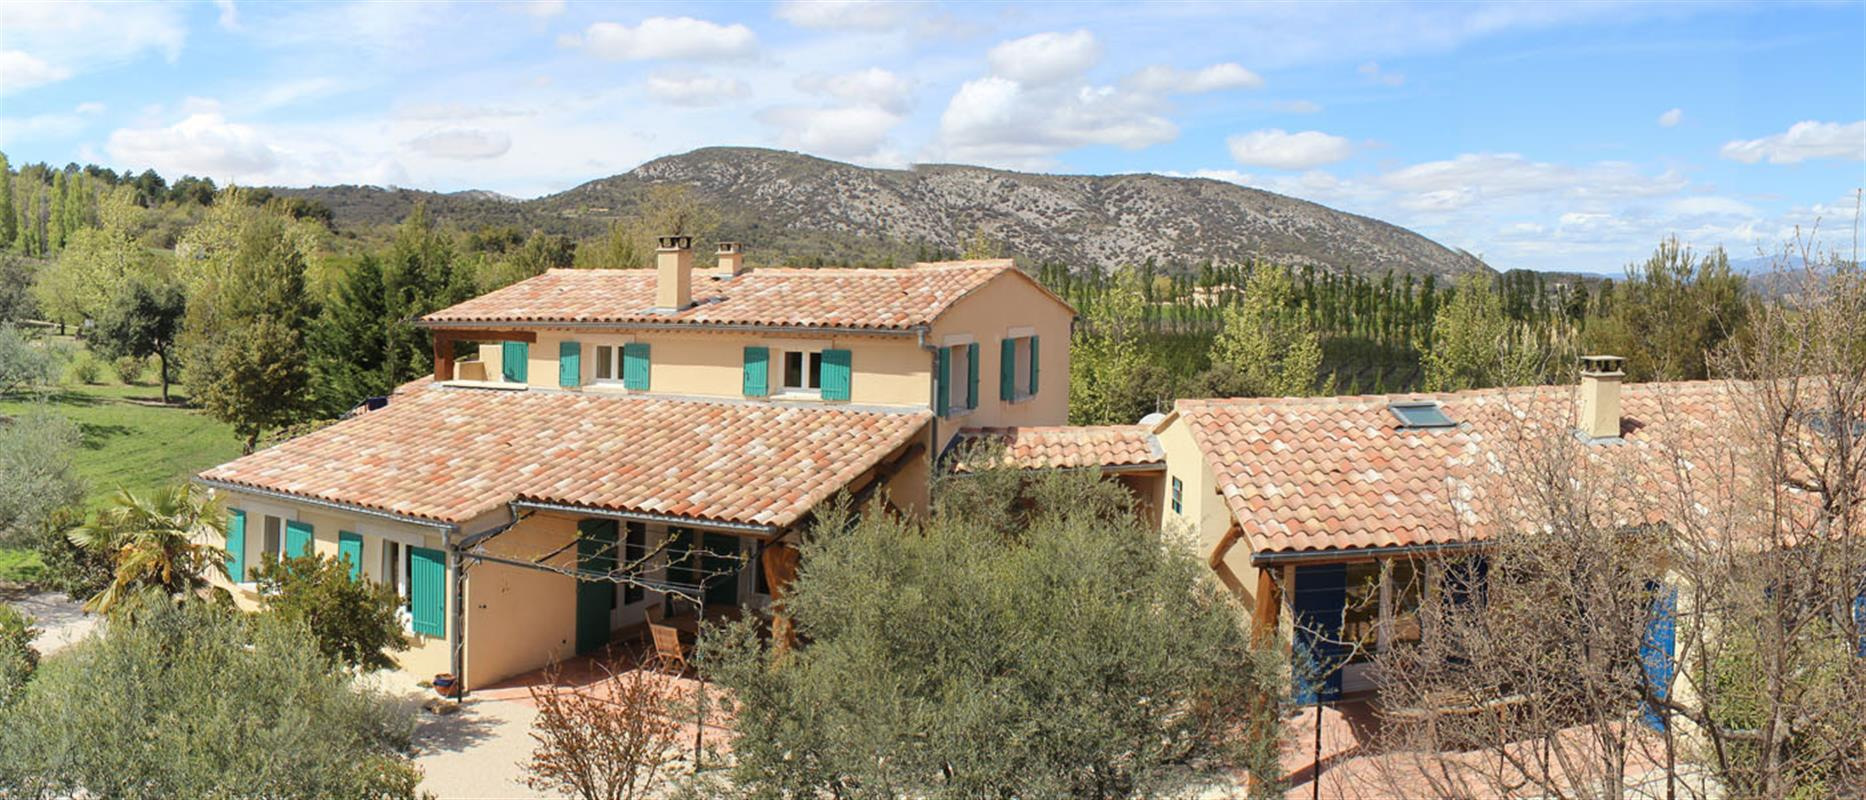 villa st aimee mont ventoux provence jdv holidays south of france